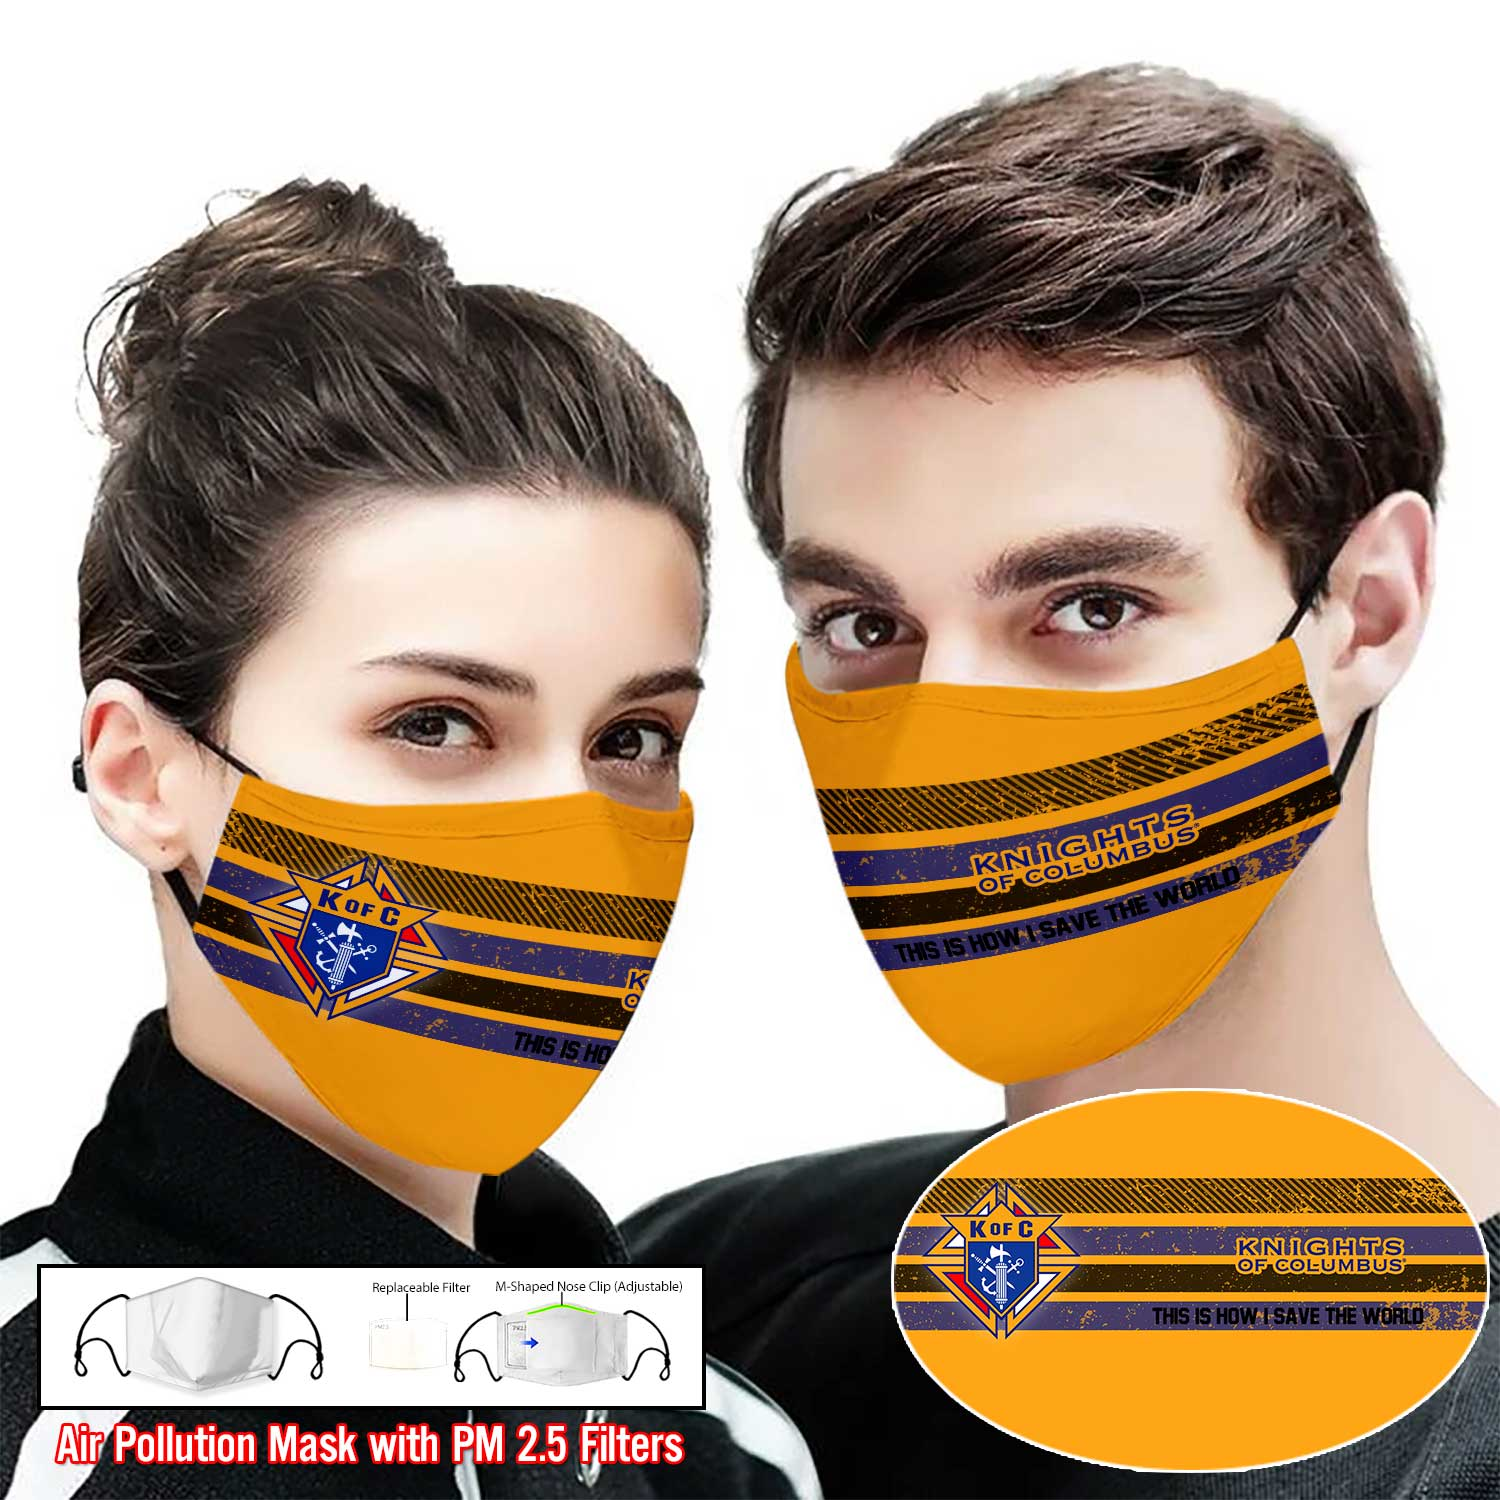 Knights of columbus this is how i save the world full printing face mask 1